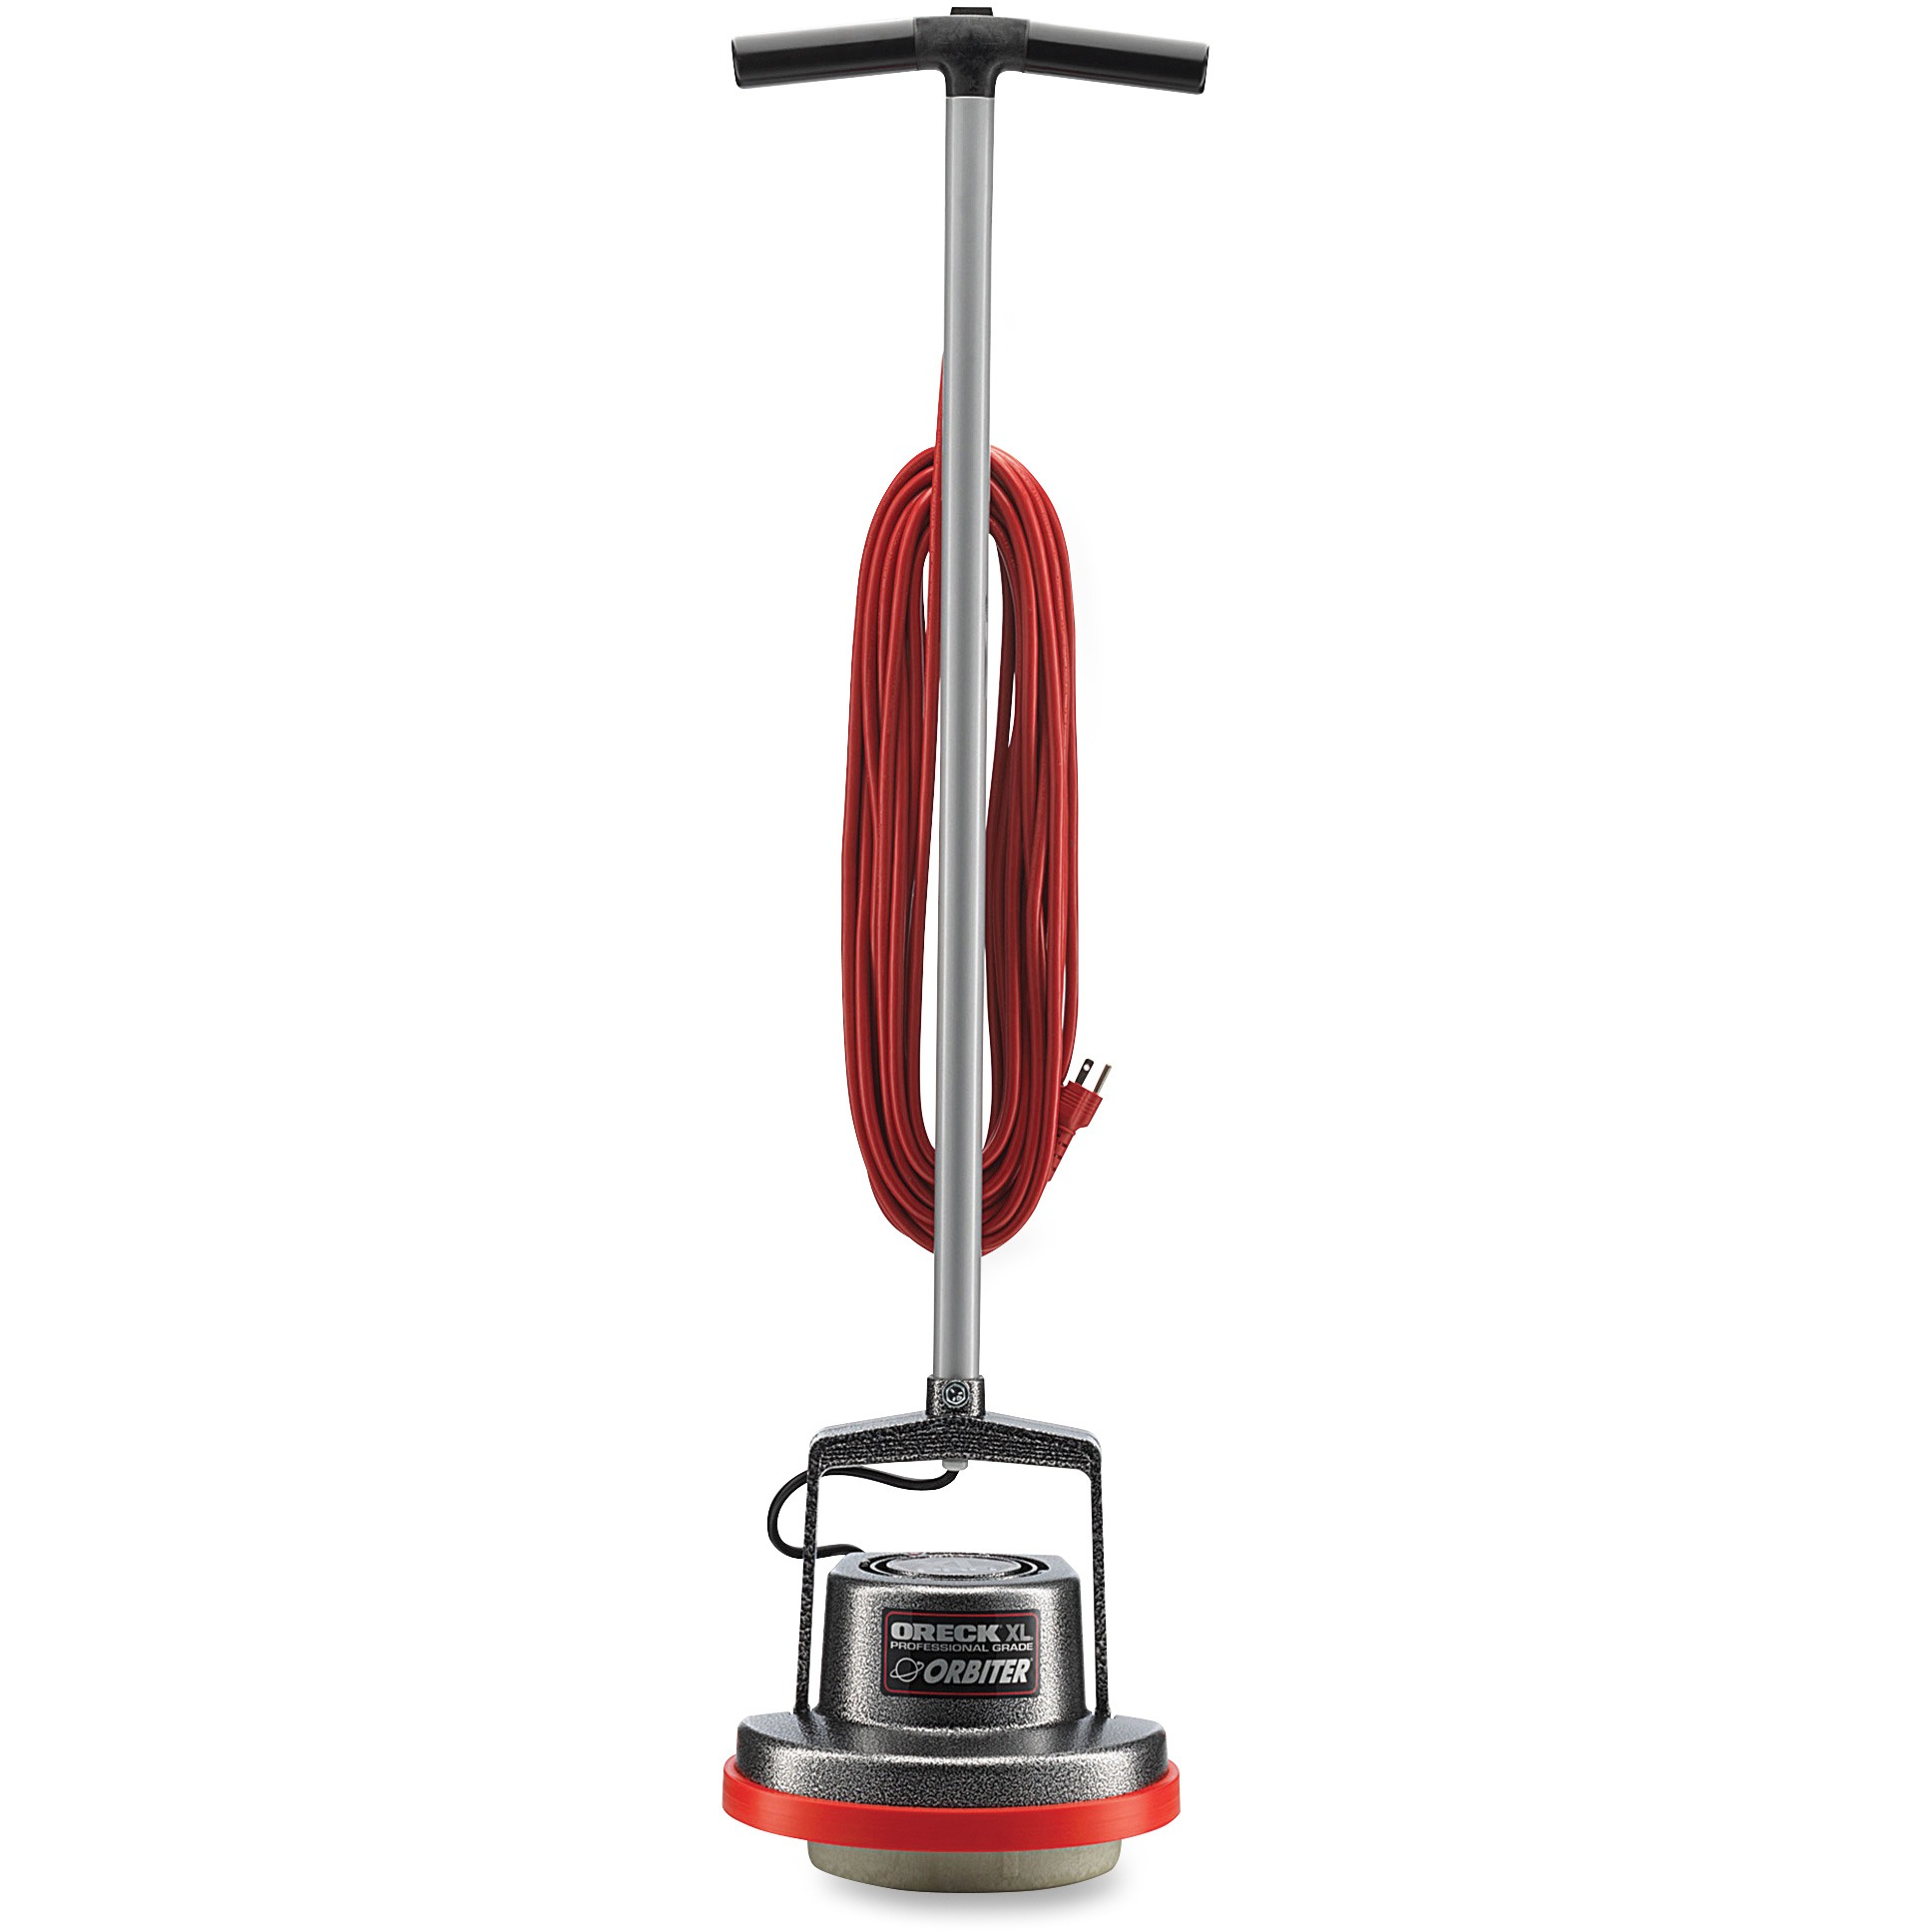 Oreck Orbiter ORB550MC Commercial Floor Machine, Silver